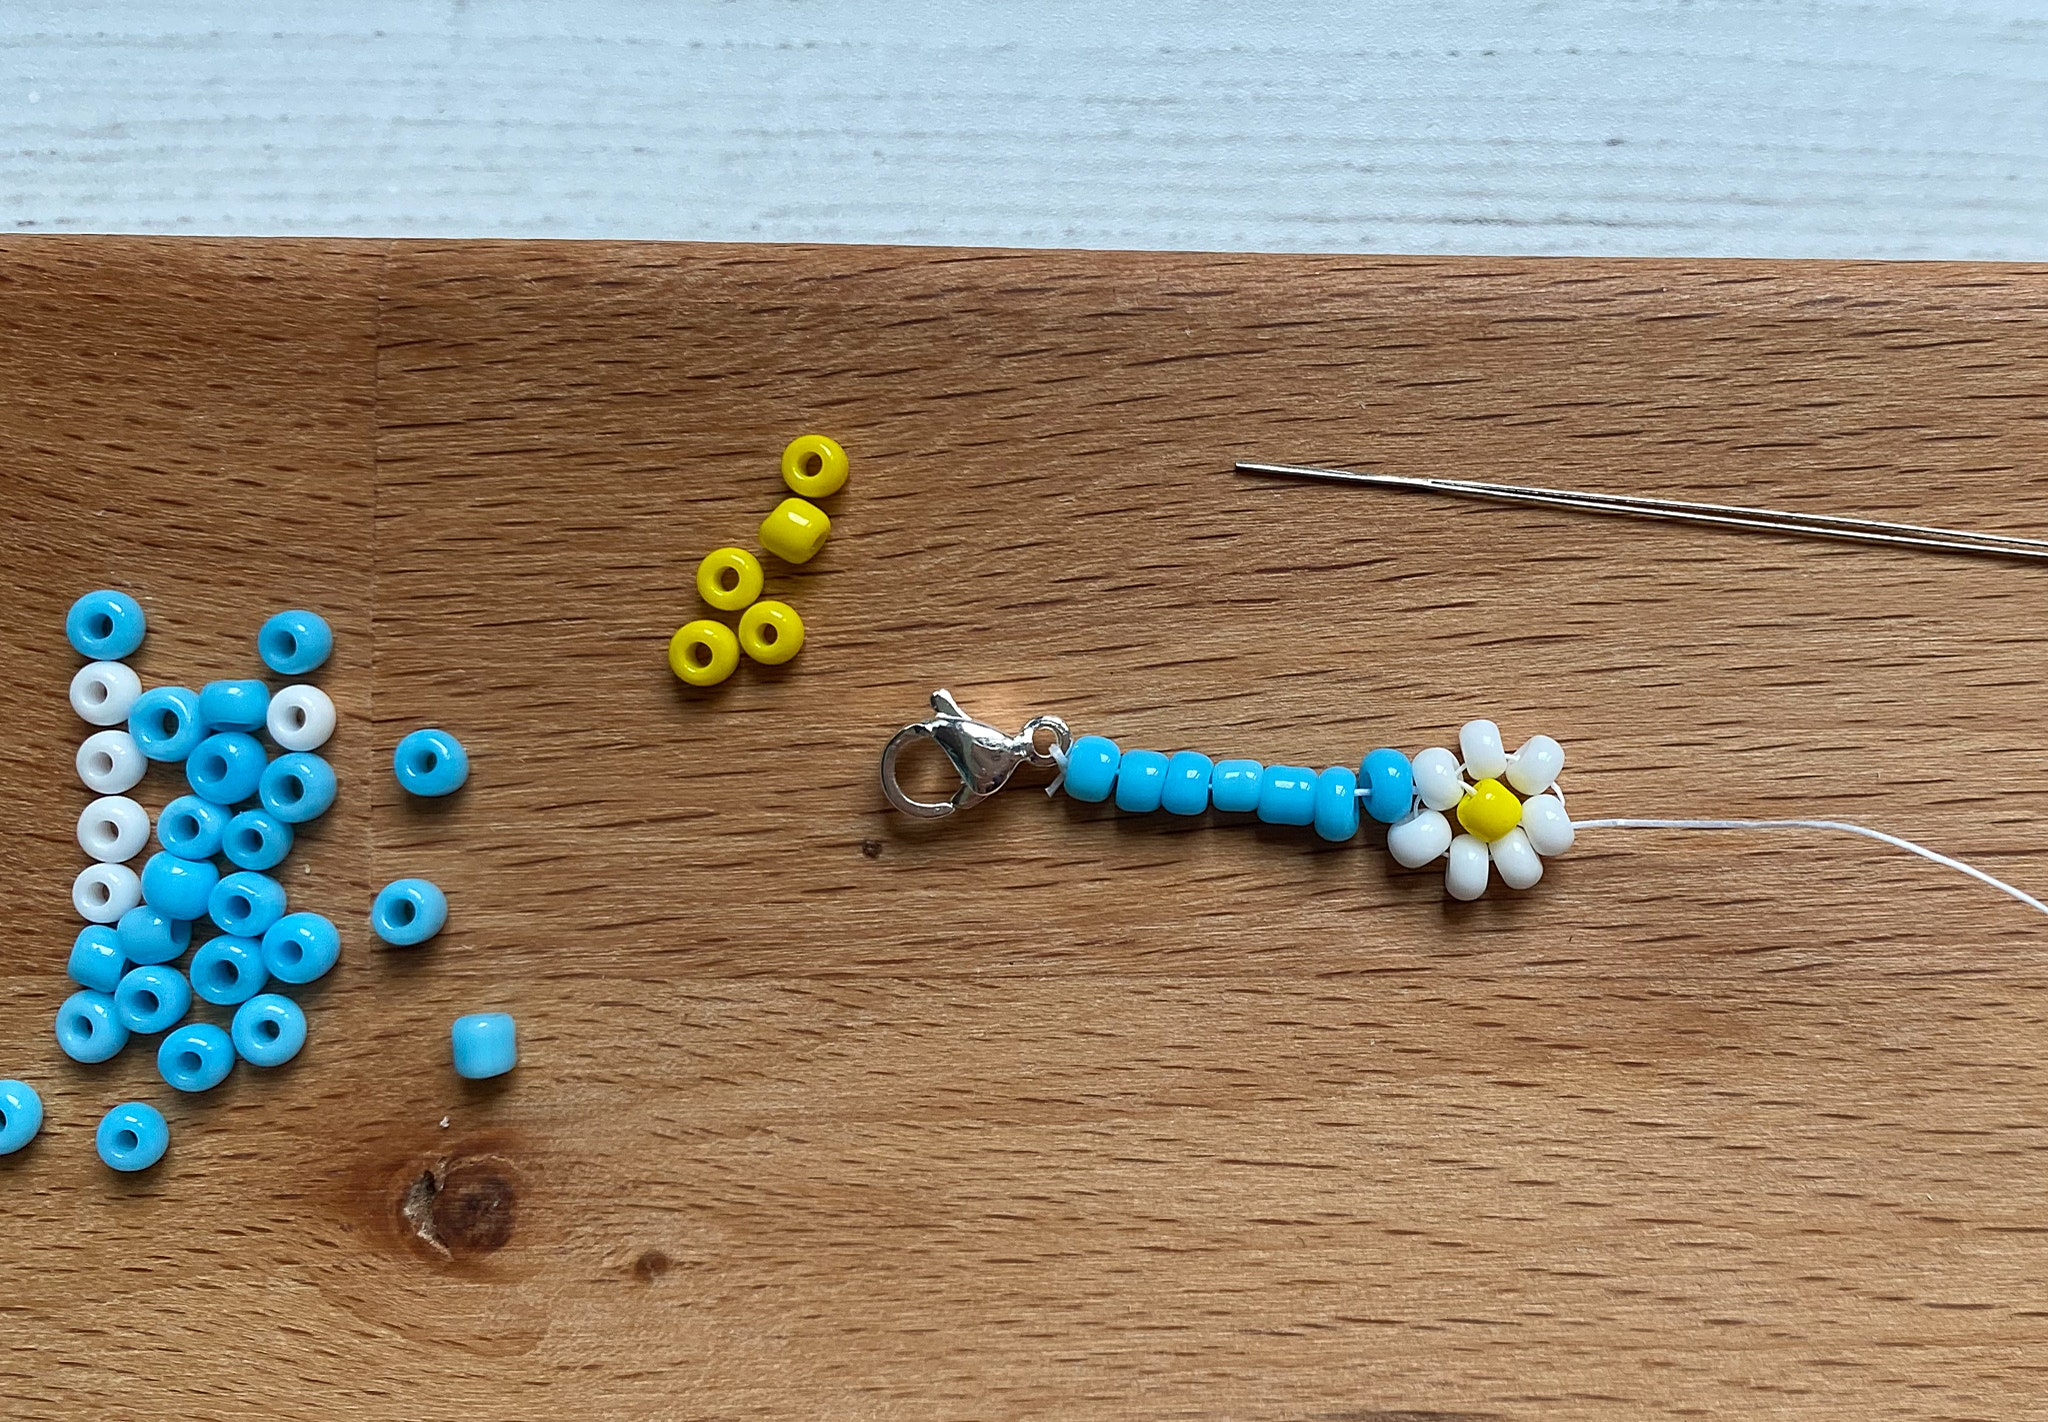 daisy chain necklace craft